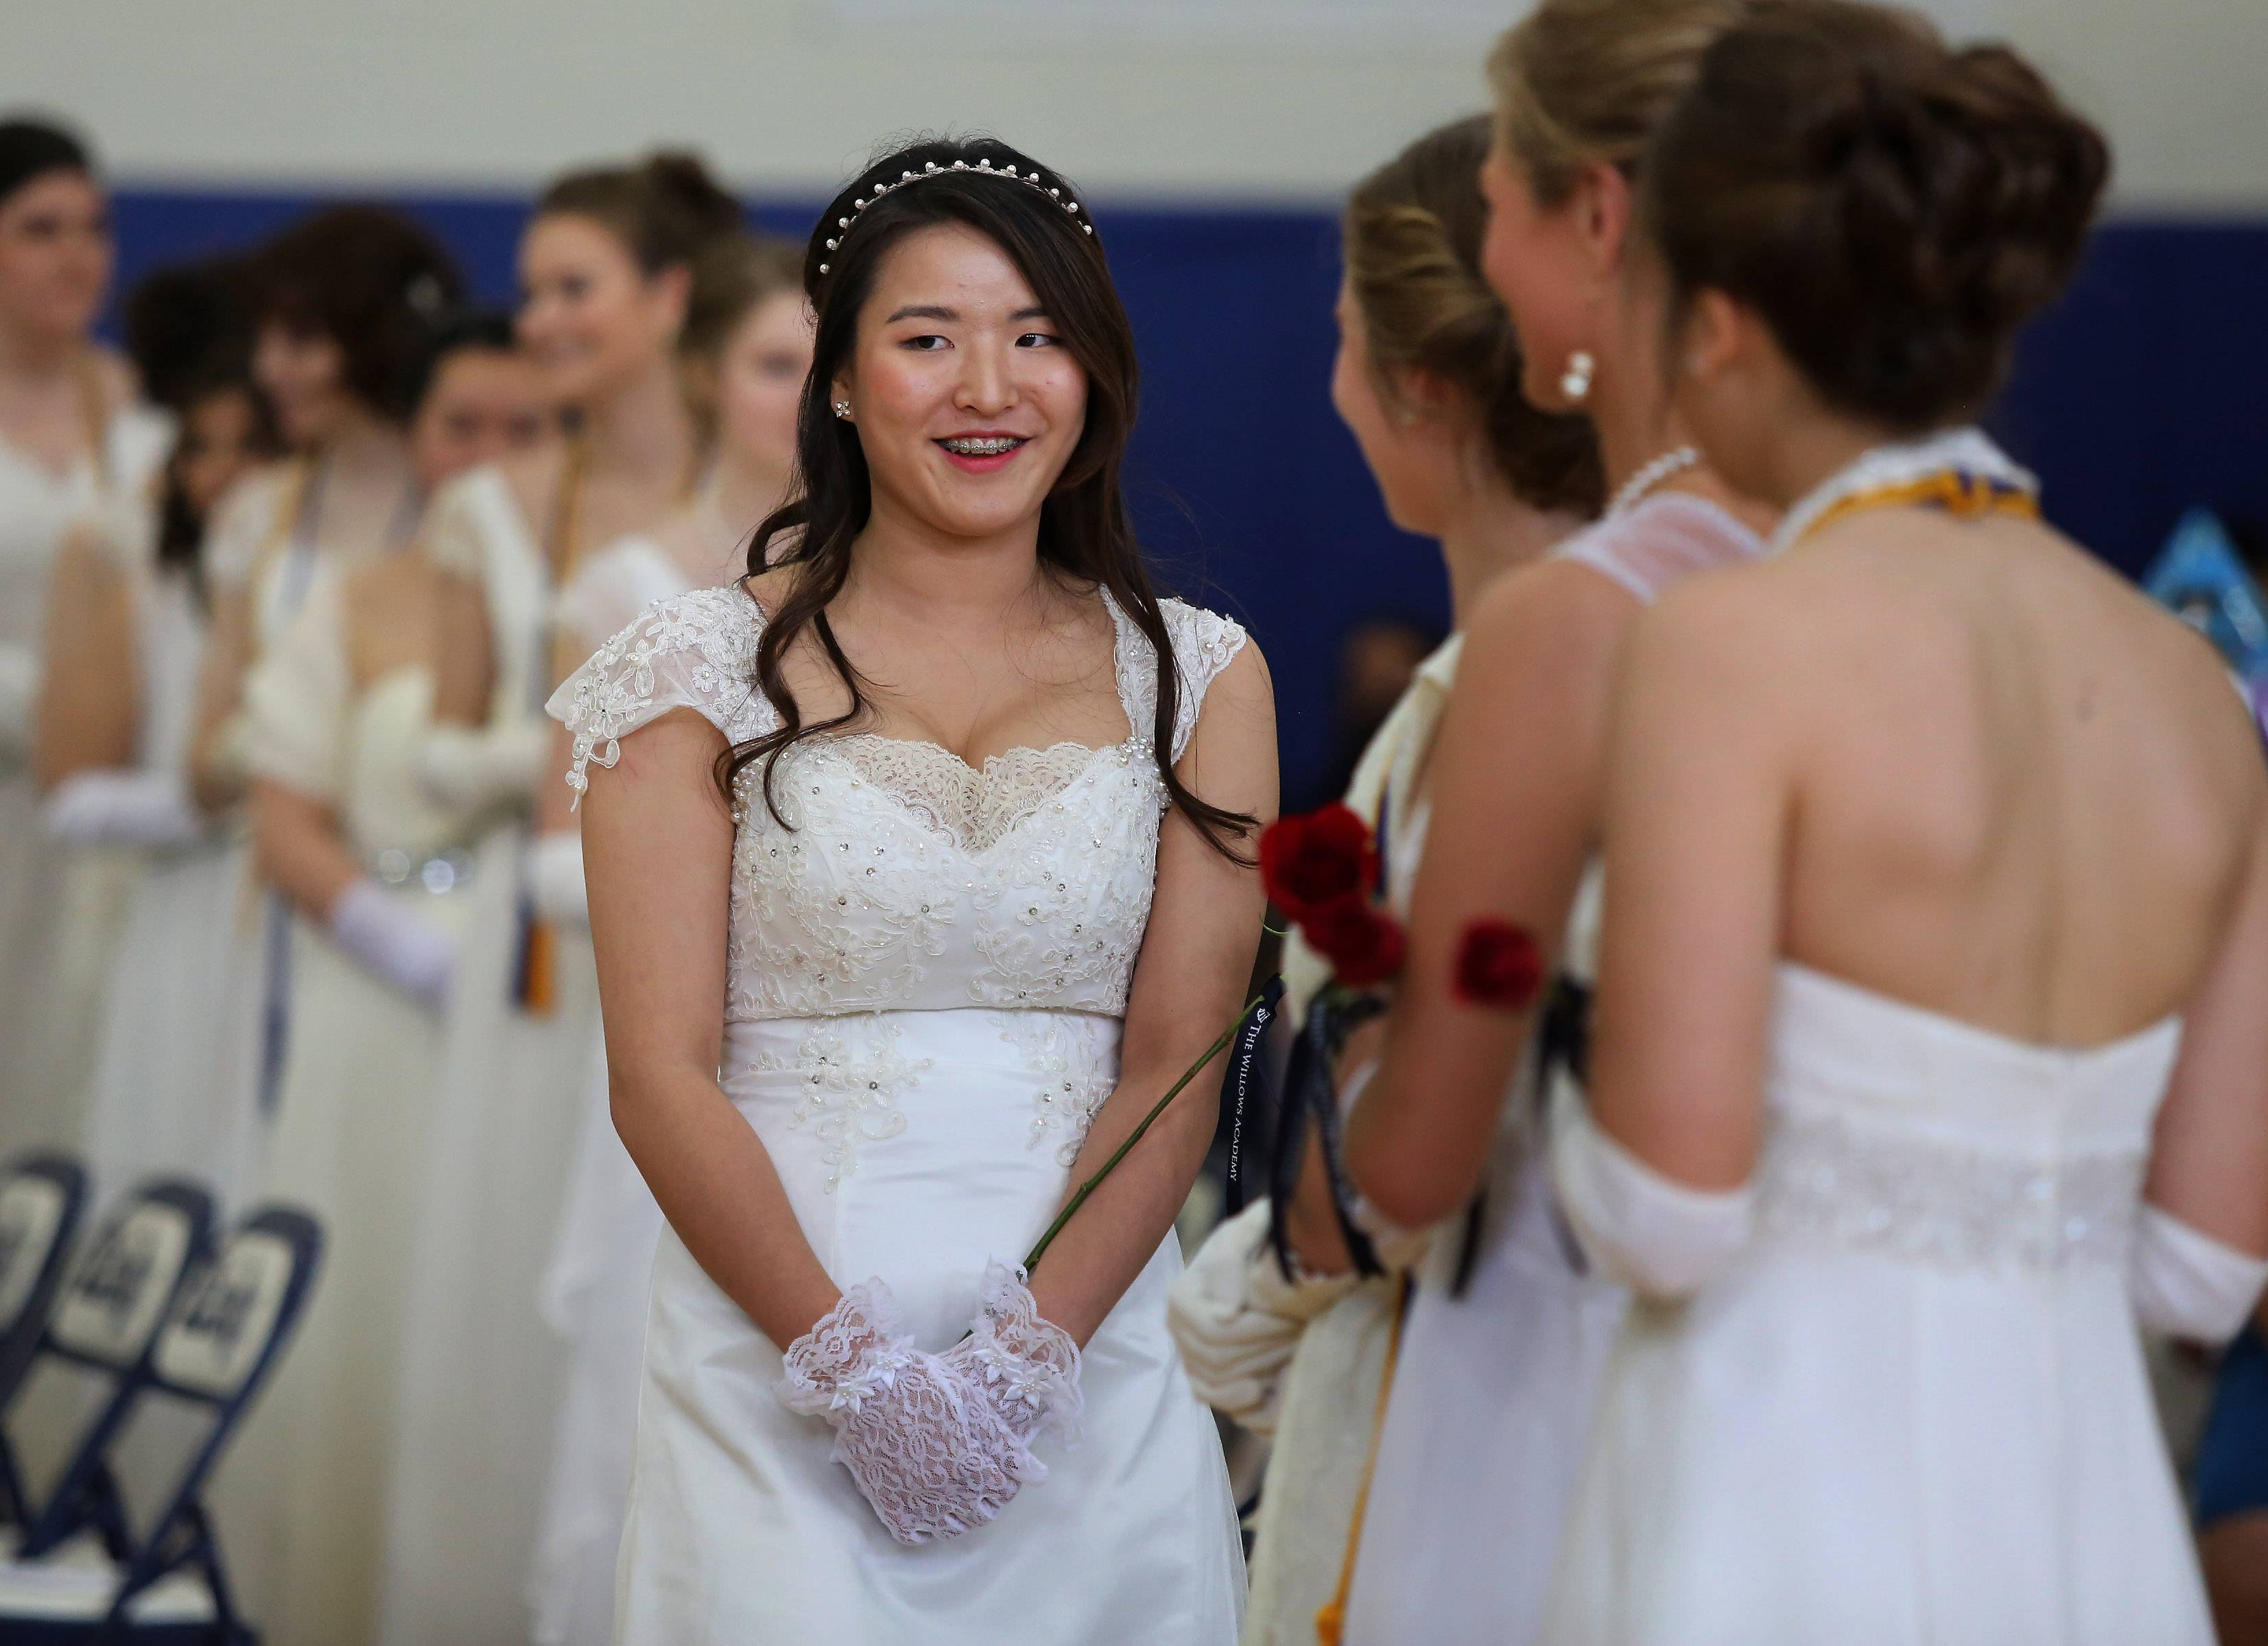 Na Won Park carries a rose as she enters the Willows Academy commencement exercises Sunday at the school. The graduating class consisted of 33 young women.